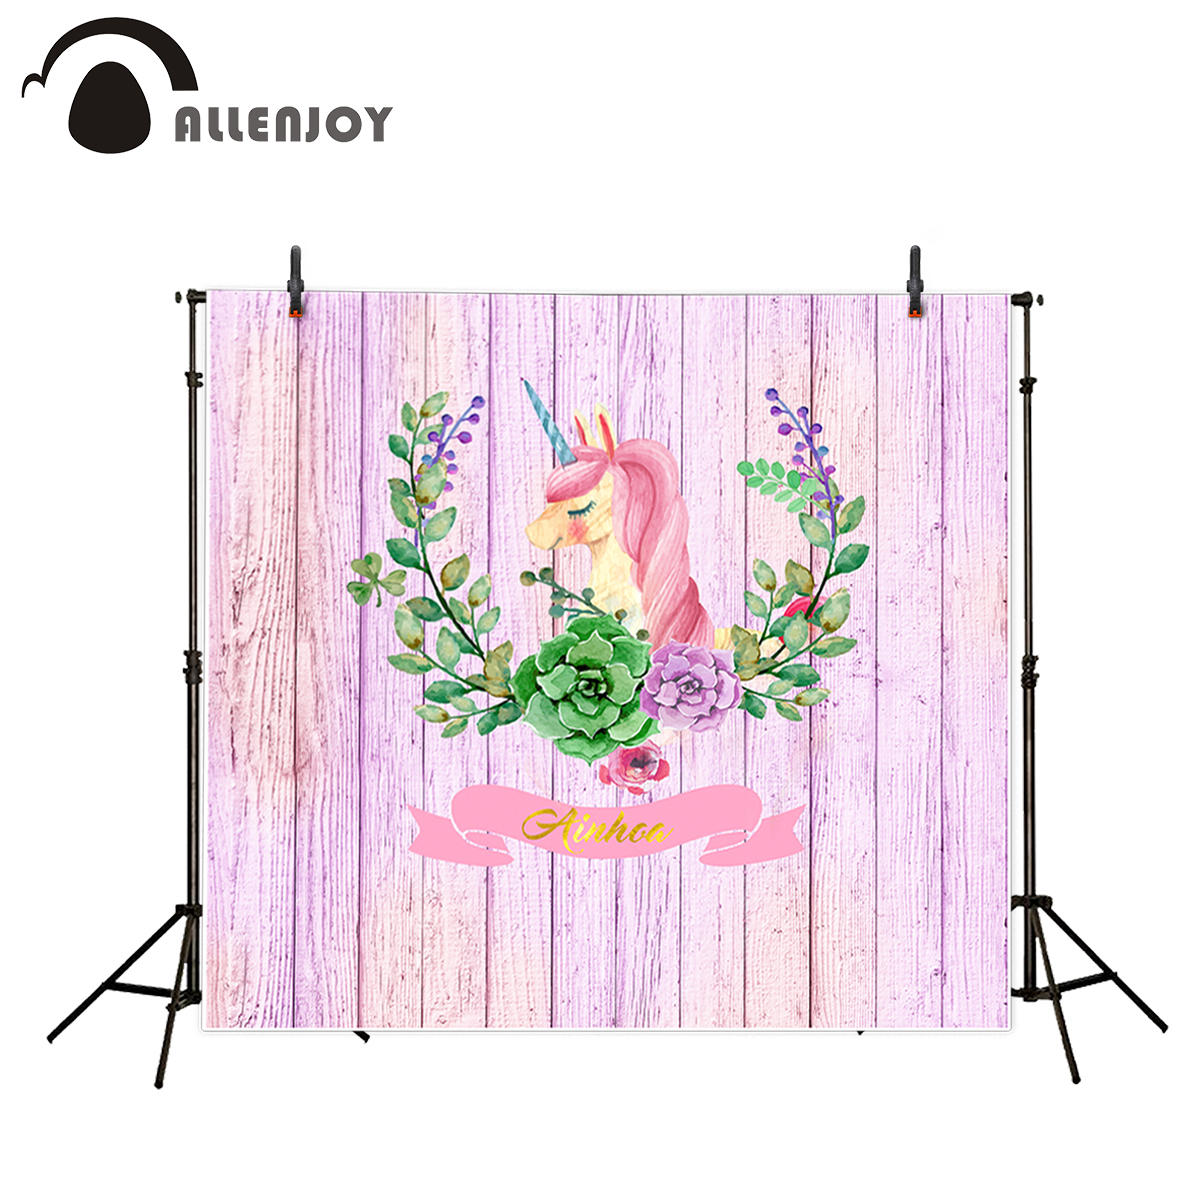 Allenjoy photography background Purple Wooden Wreaths Unicorn Golden Birthday backdrop newborn photo studio camera fotografica недорого